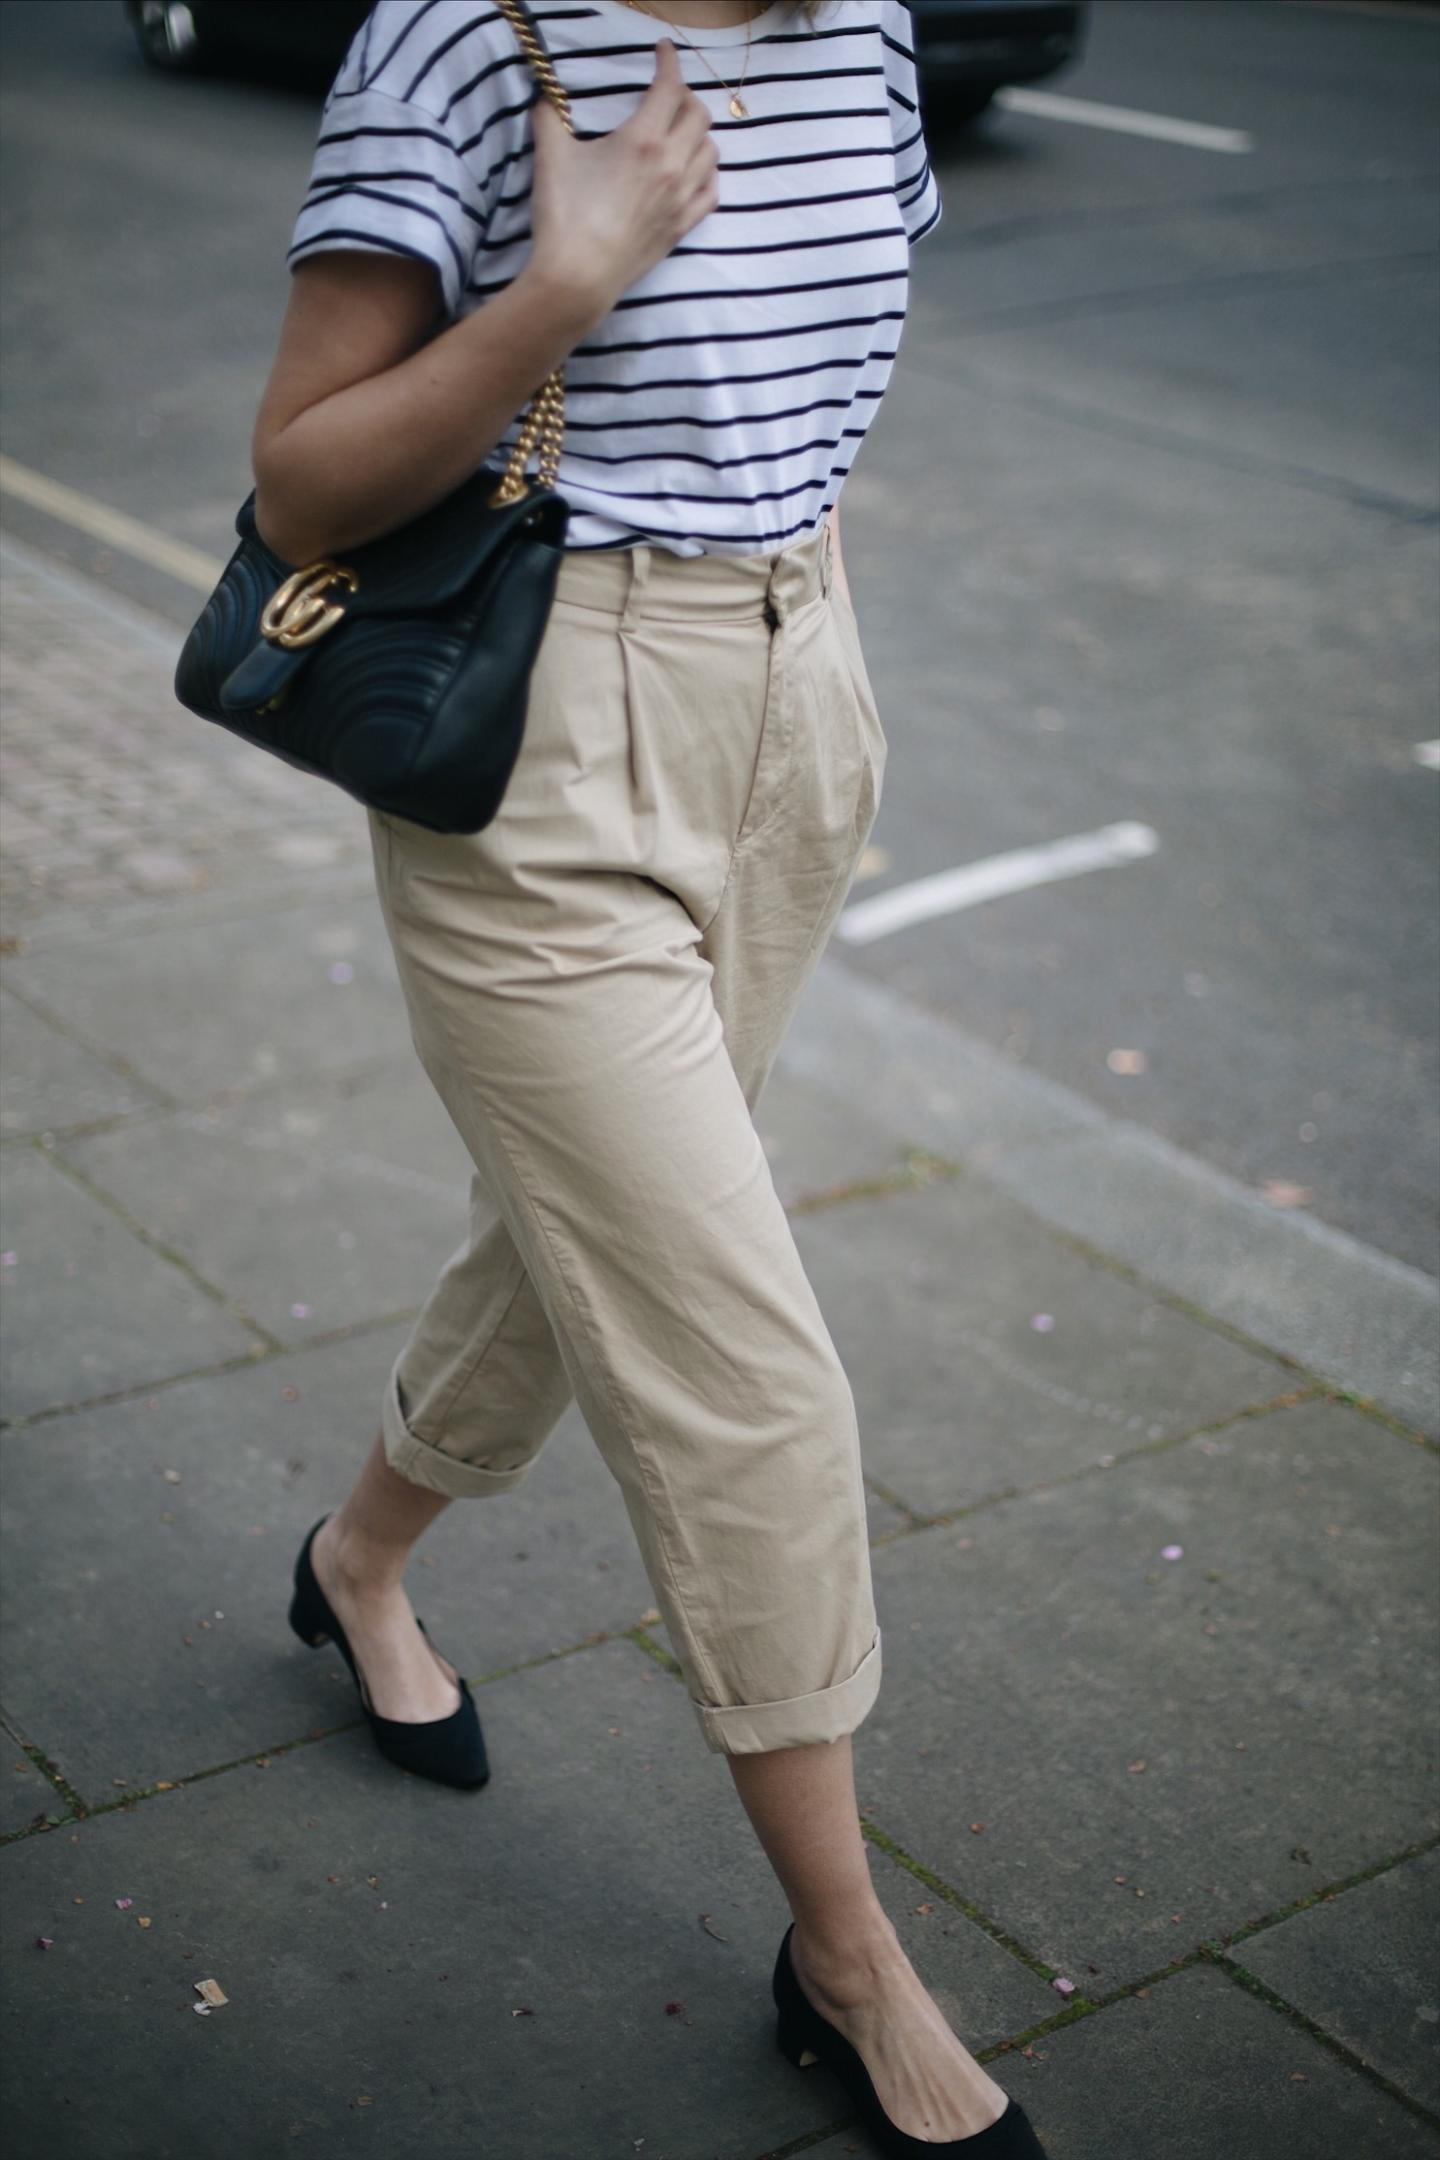 Emma Hill wears Dune x Rupert Sanderson 'Grace Hi' black satin low heels, beige high waisted chino trousers, stripe t-shirt, Gucci Marmont bag